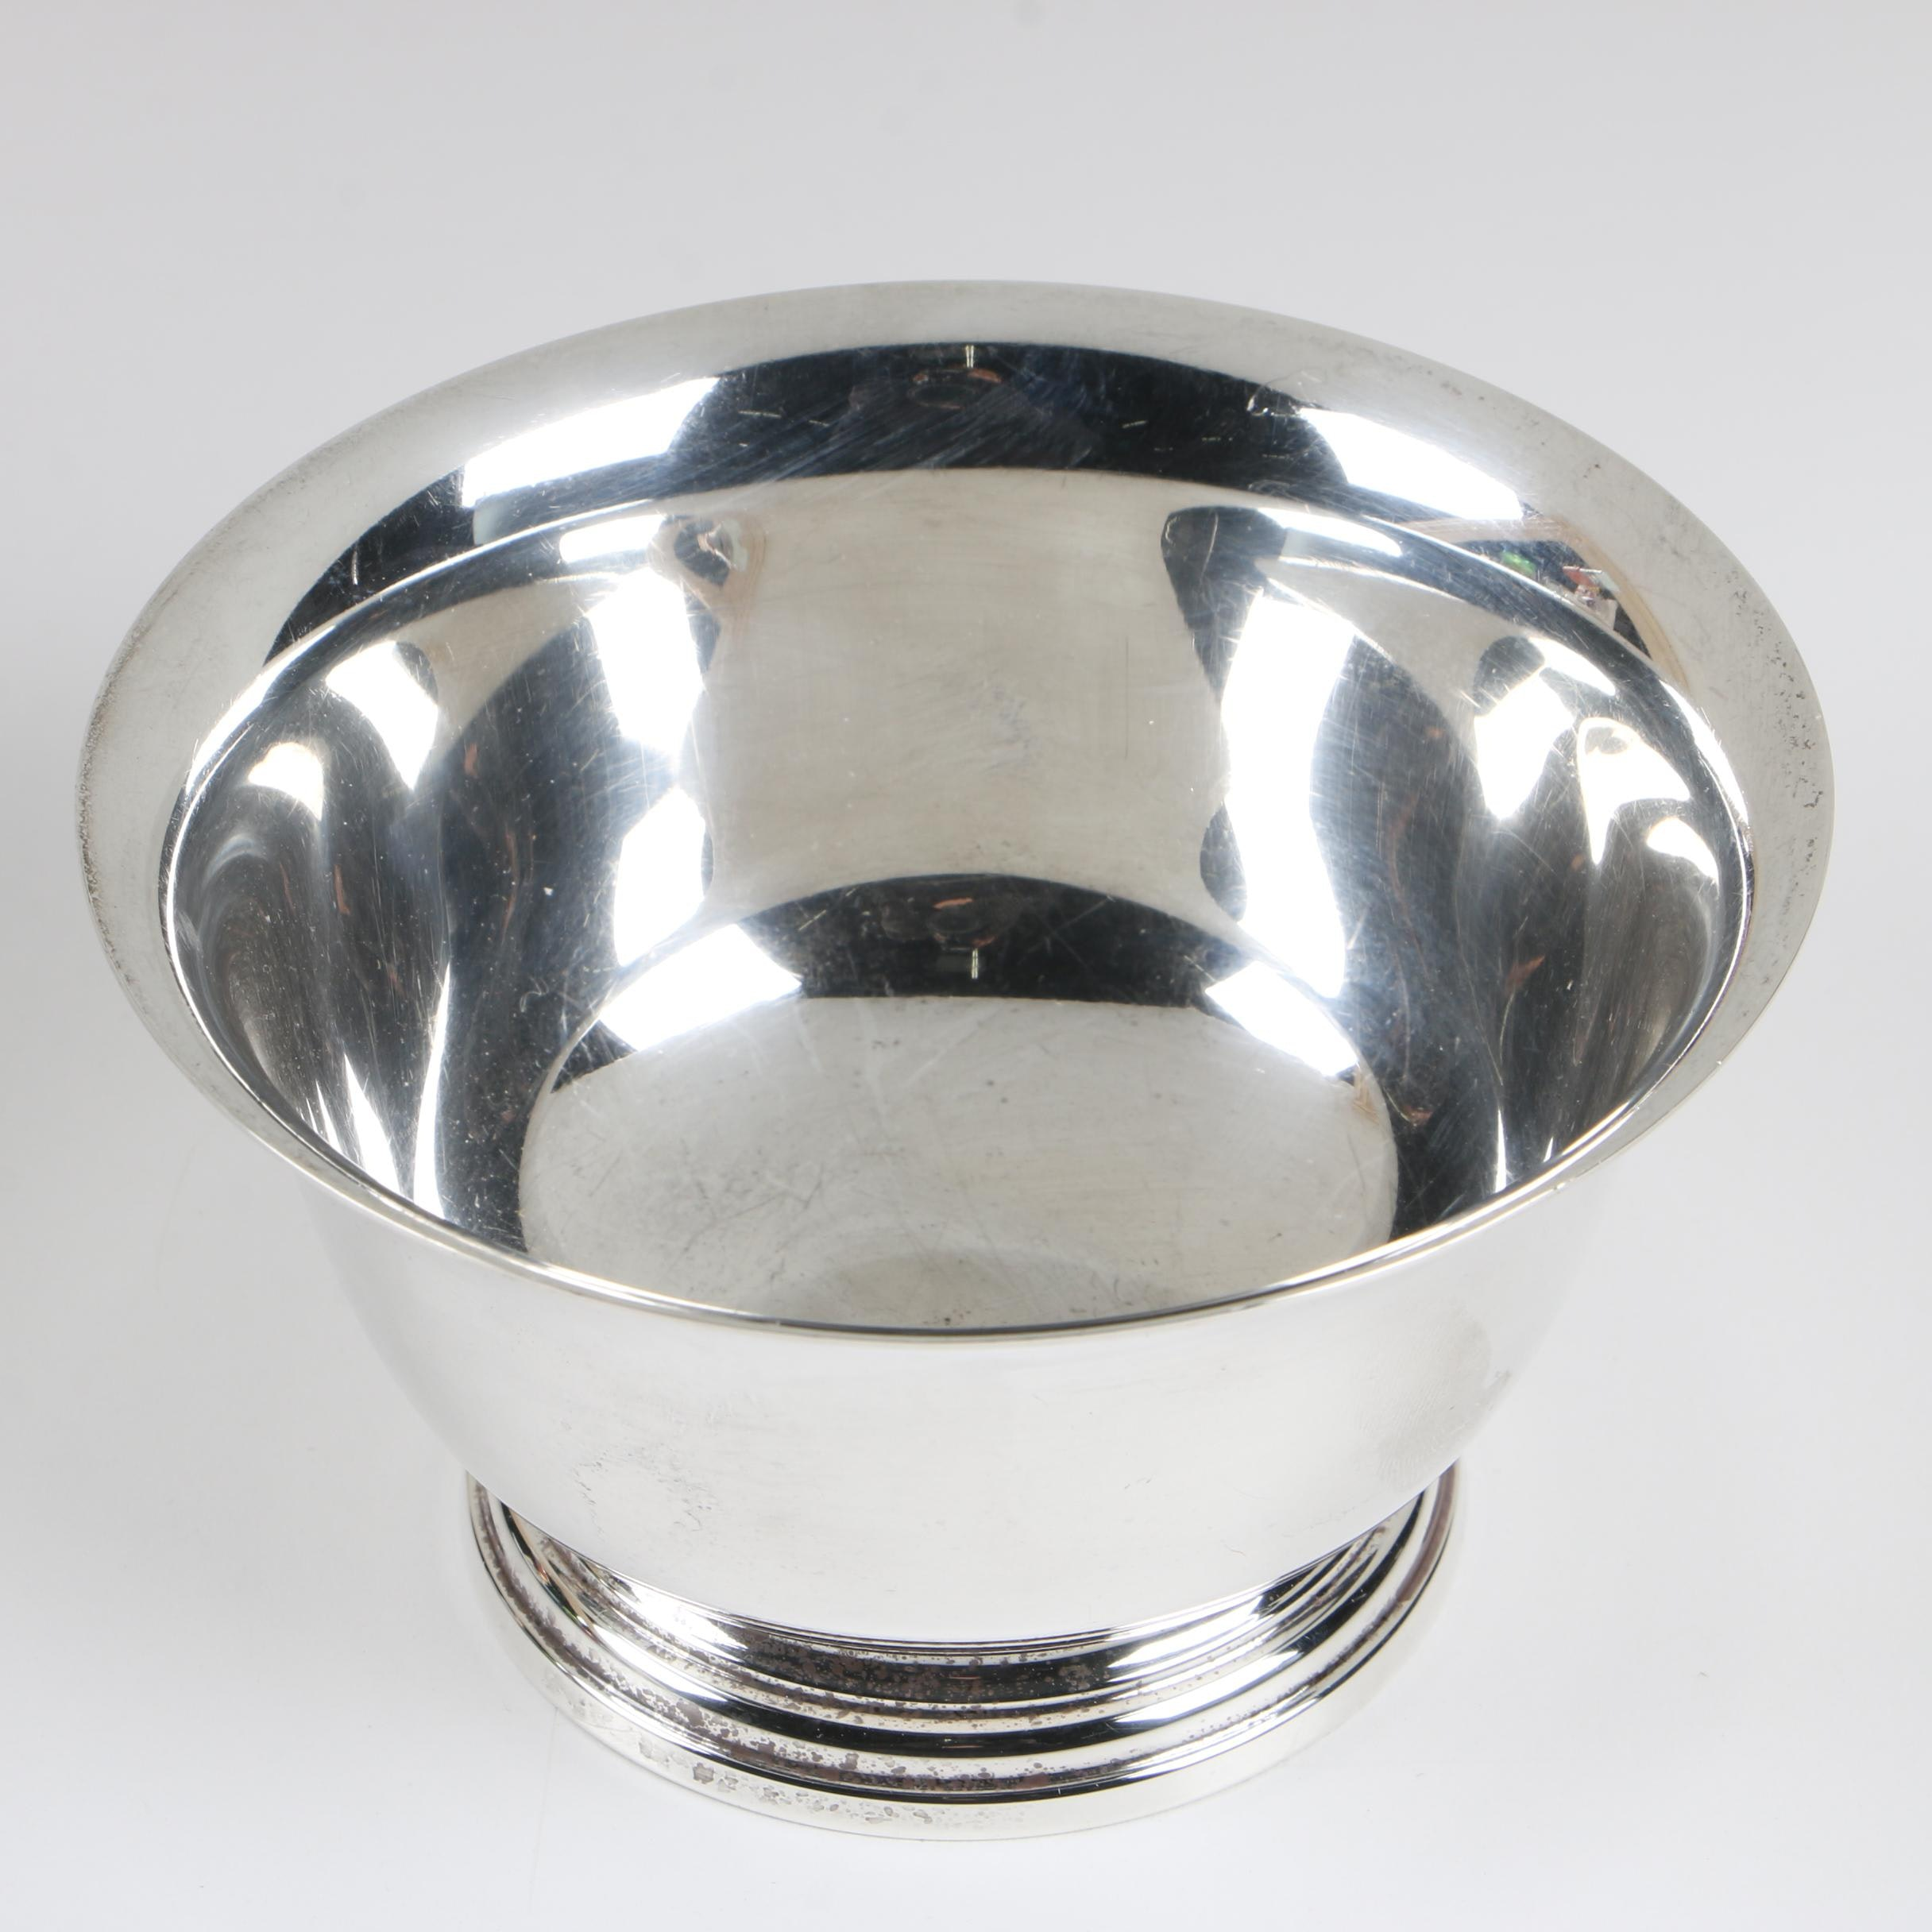 Manchester Silver Co. Sterling Reproduction Paul Revere Bowl, 1914–1985